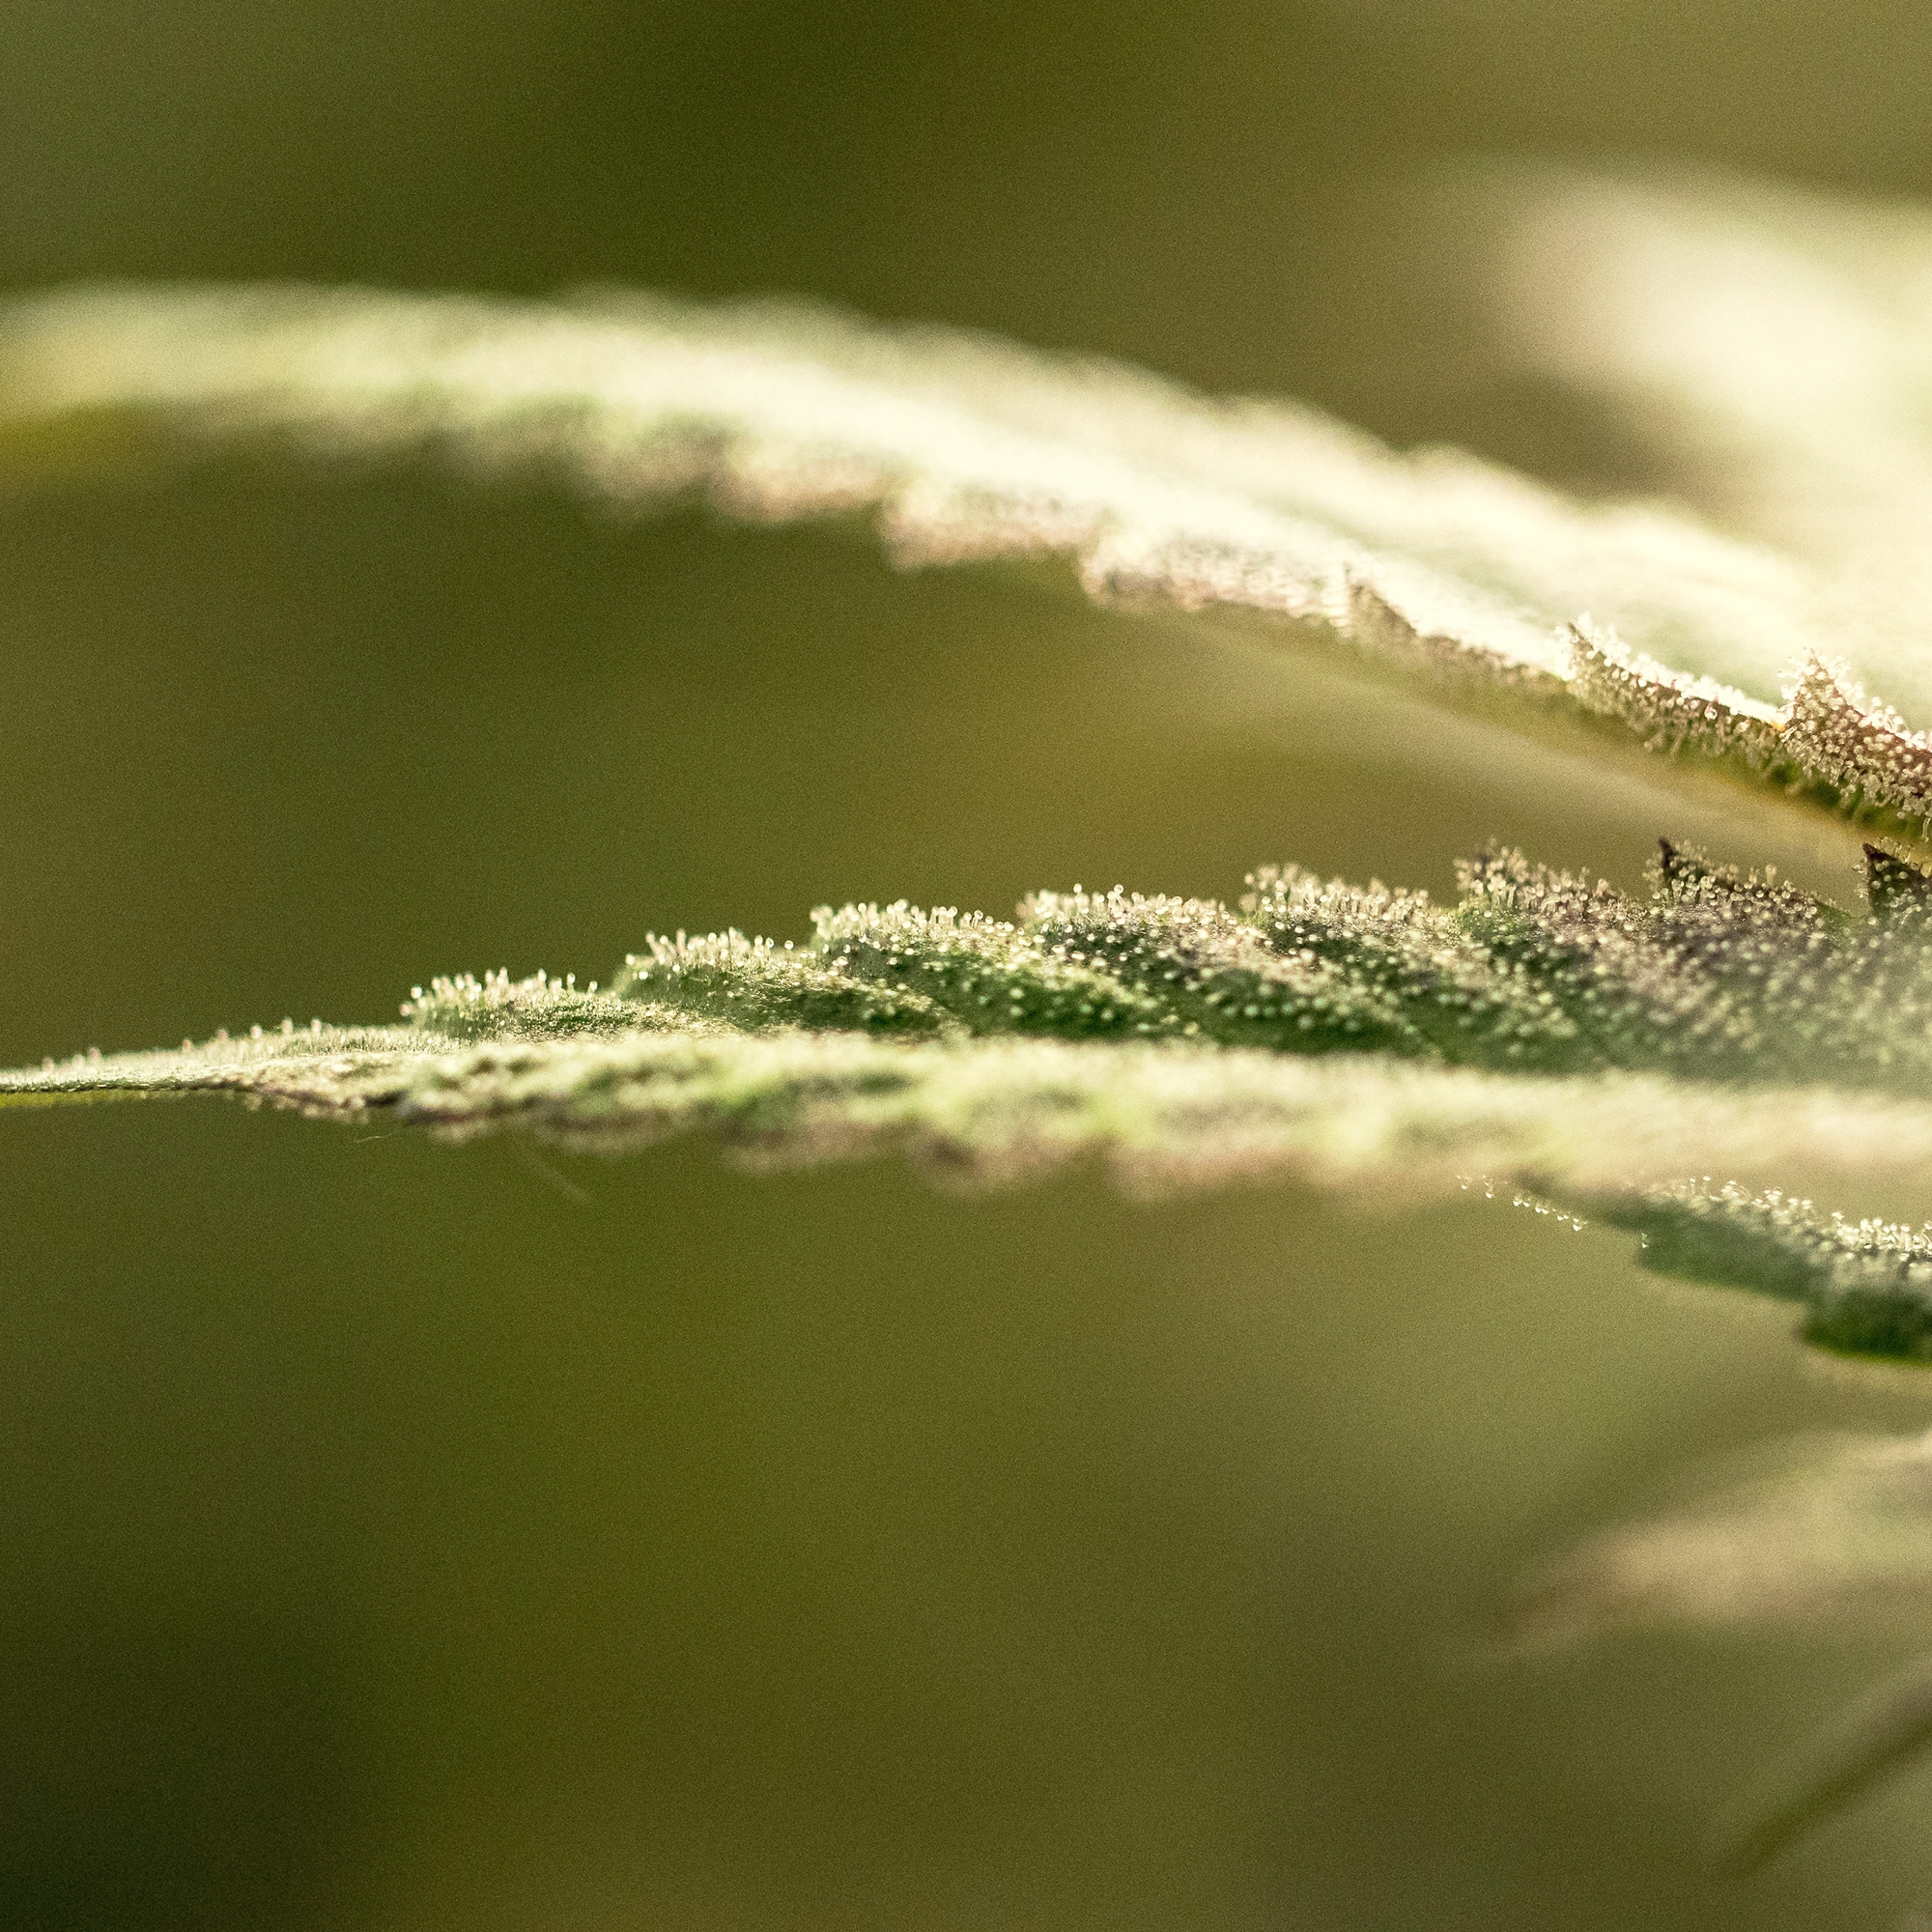 Close up of Cannabis